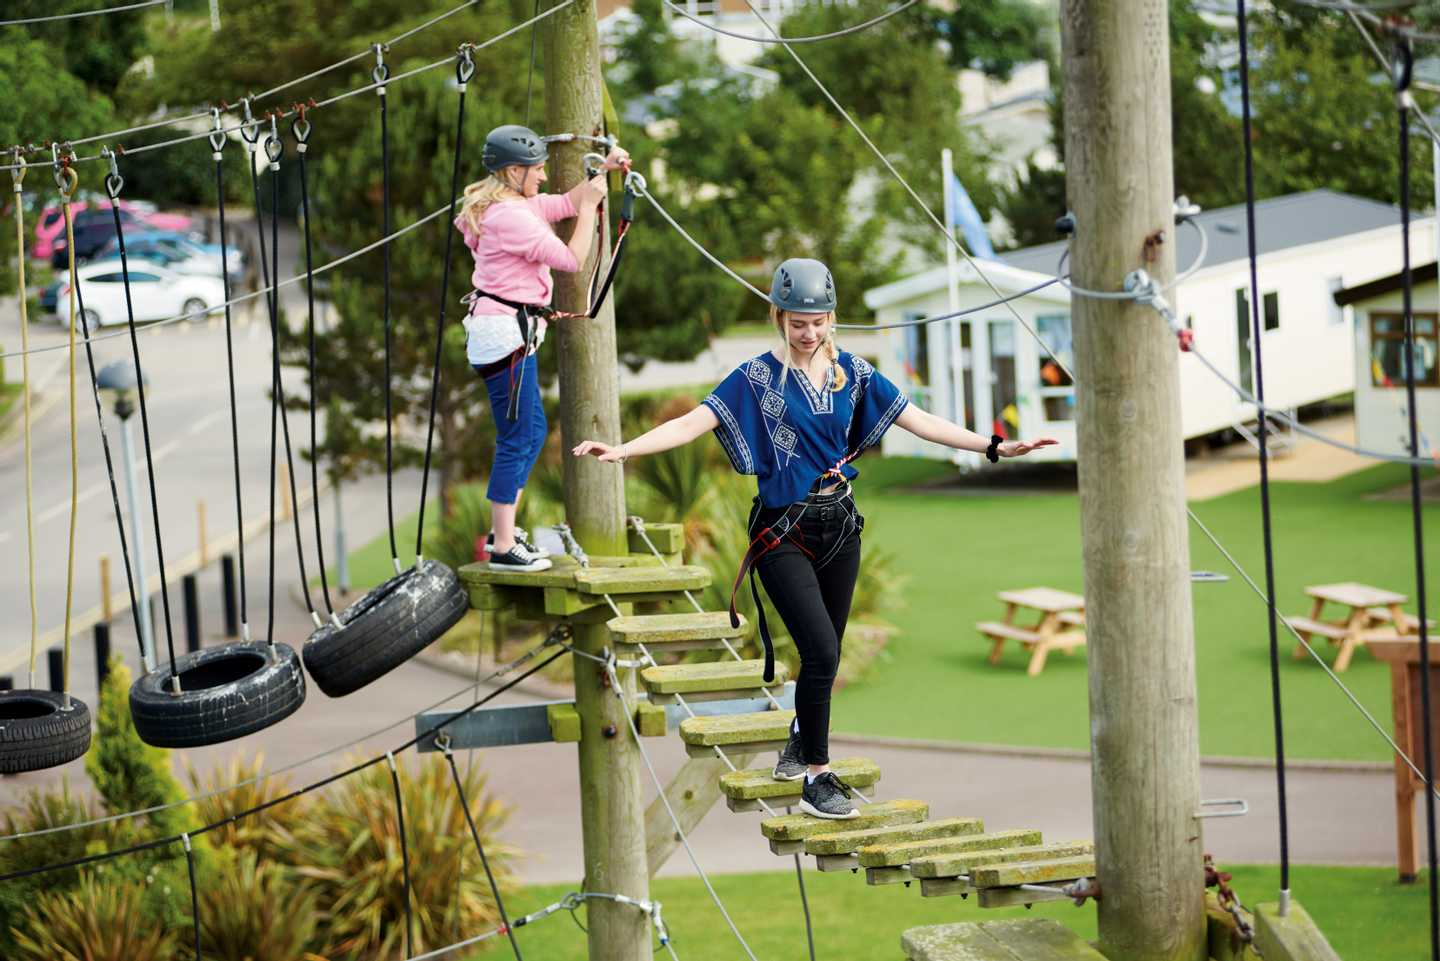 Guests enjoying our ropes course